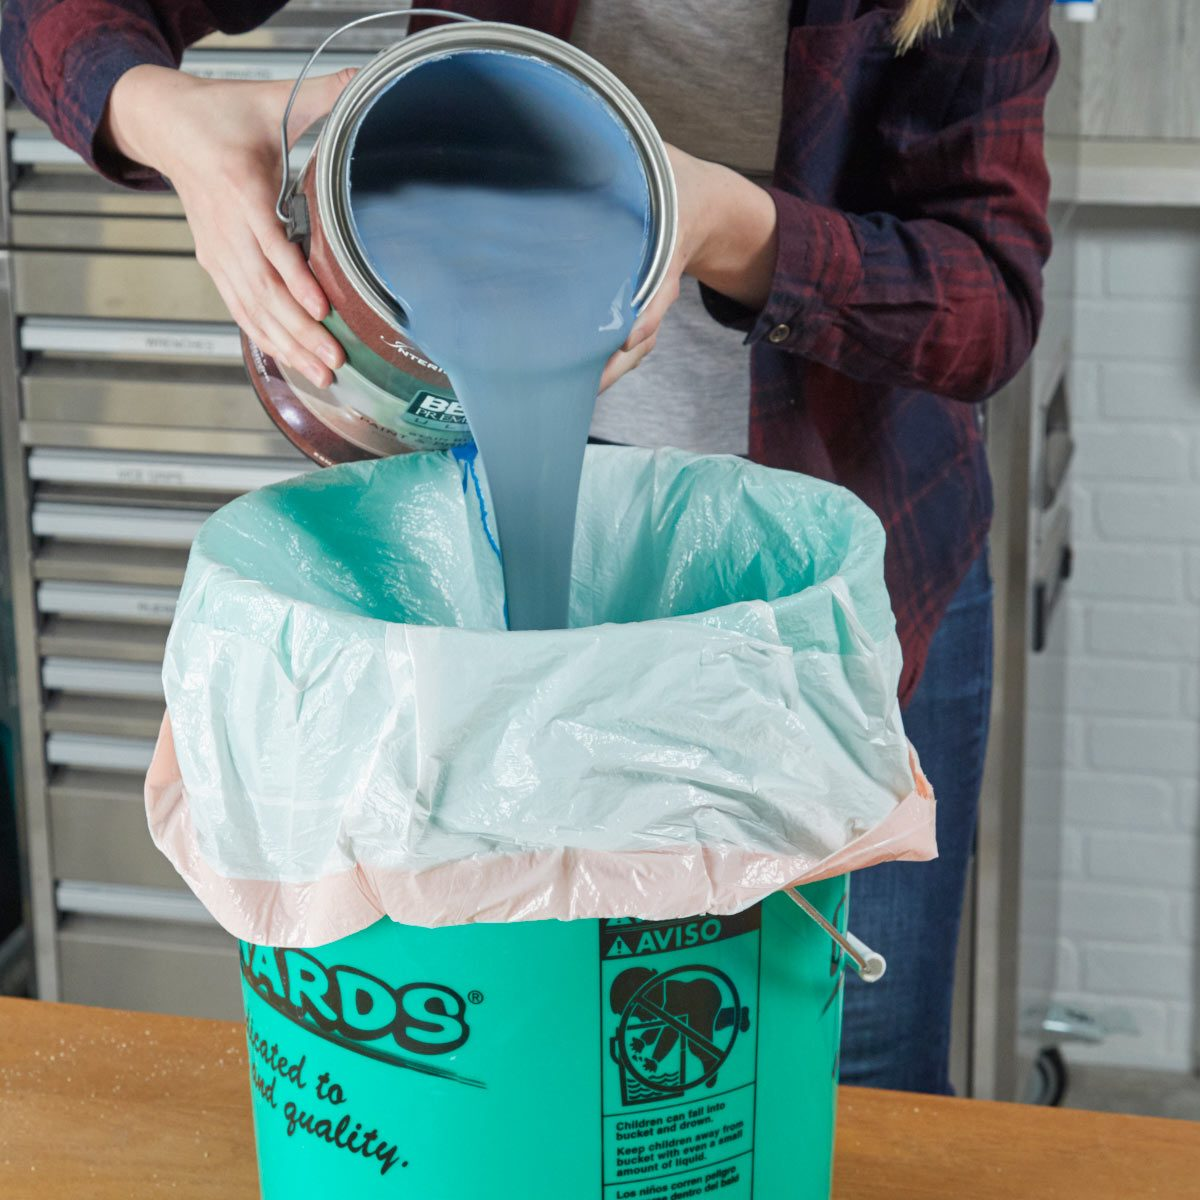 15 Brilliant 5 Gallon Bucket Hacks for Your Home You Need to Try